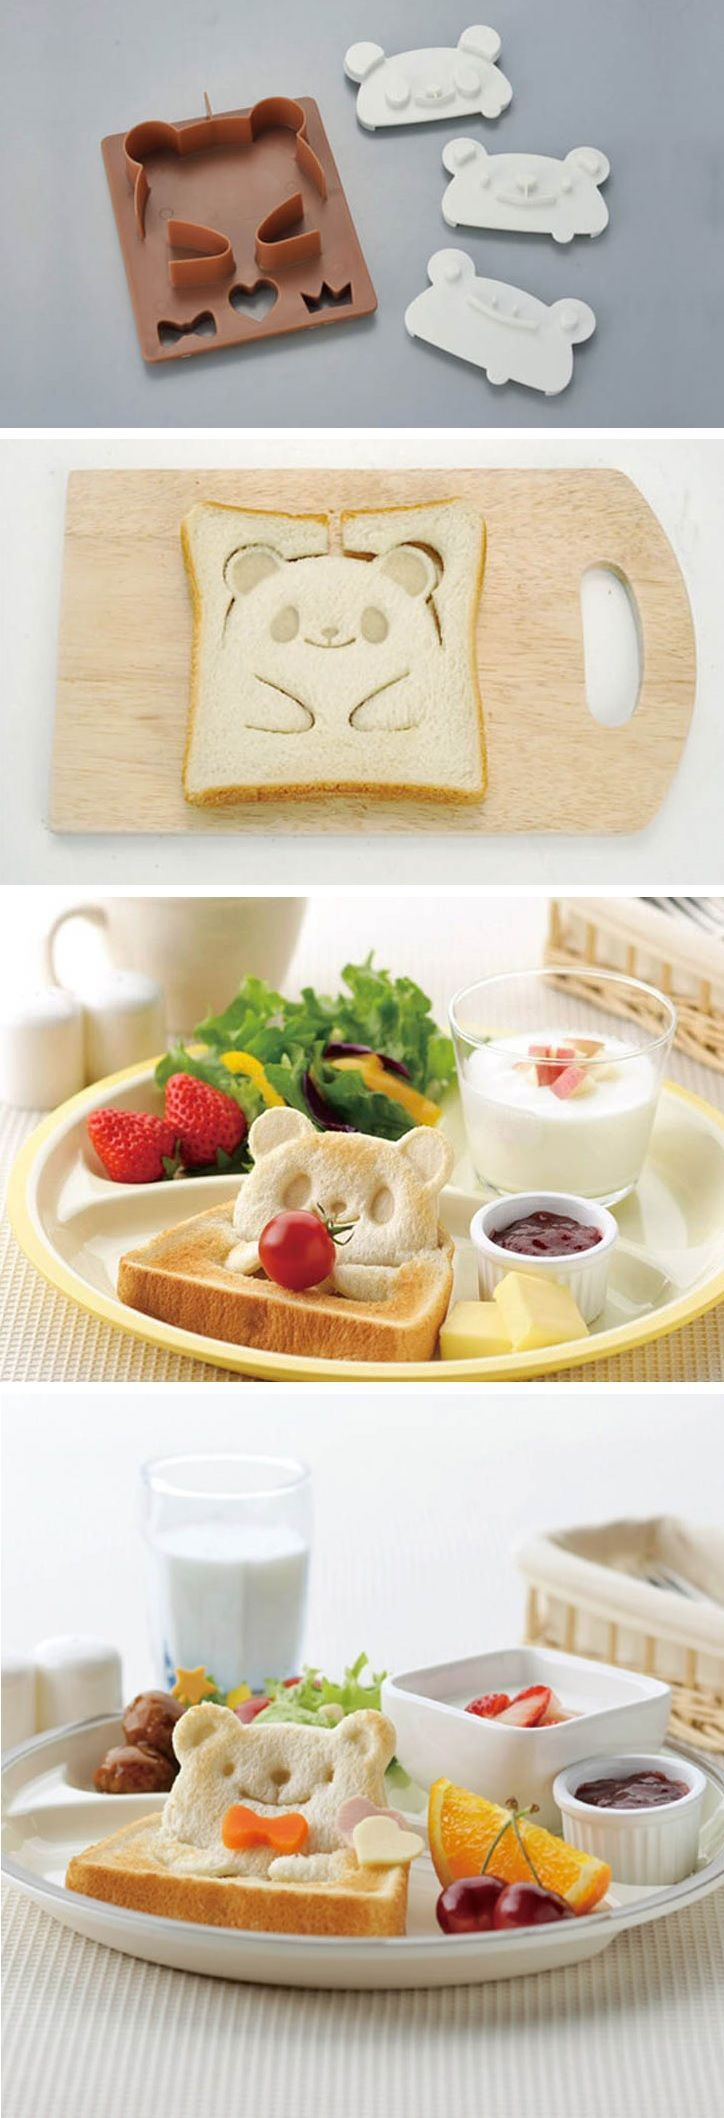 Best 25 Sandwich Cutters Ideas On Pinterest Sandwich Box